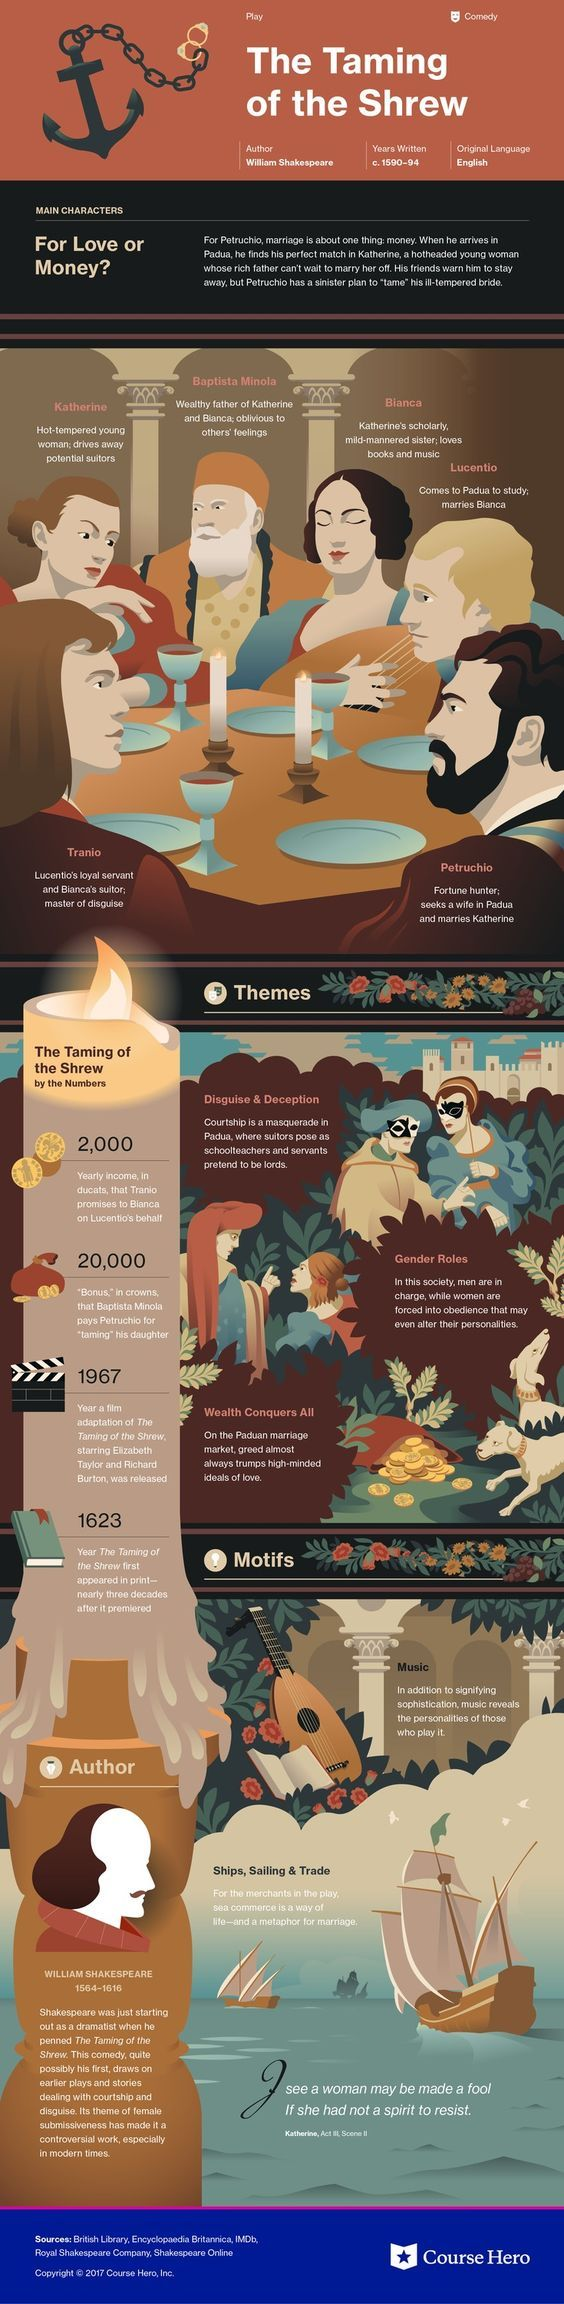 This @CourseHero infographic on The Taming of the Shrew is both visually stunning and informative!